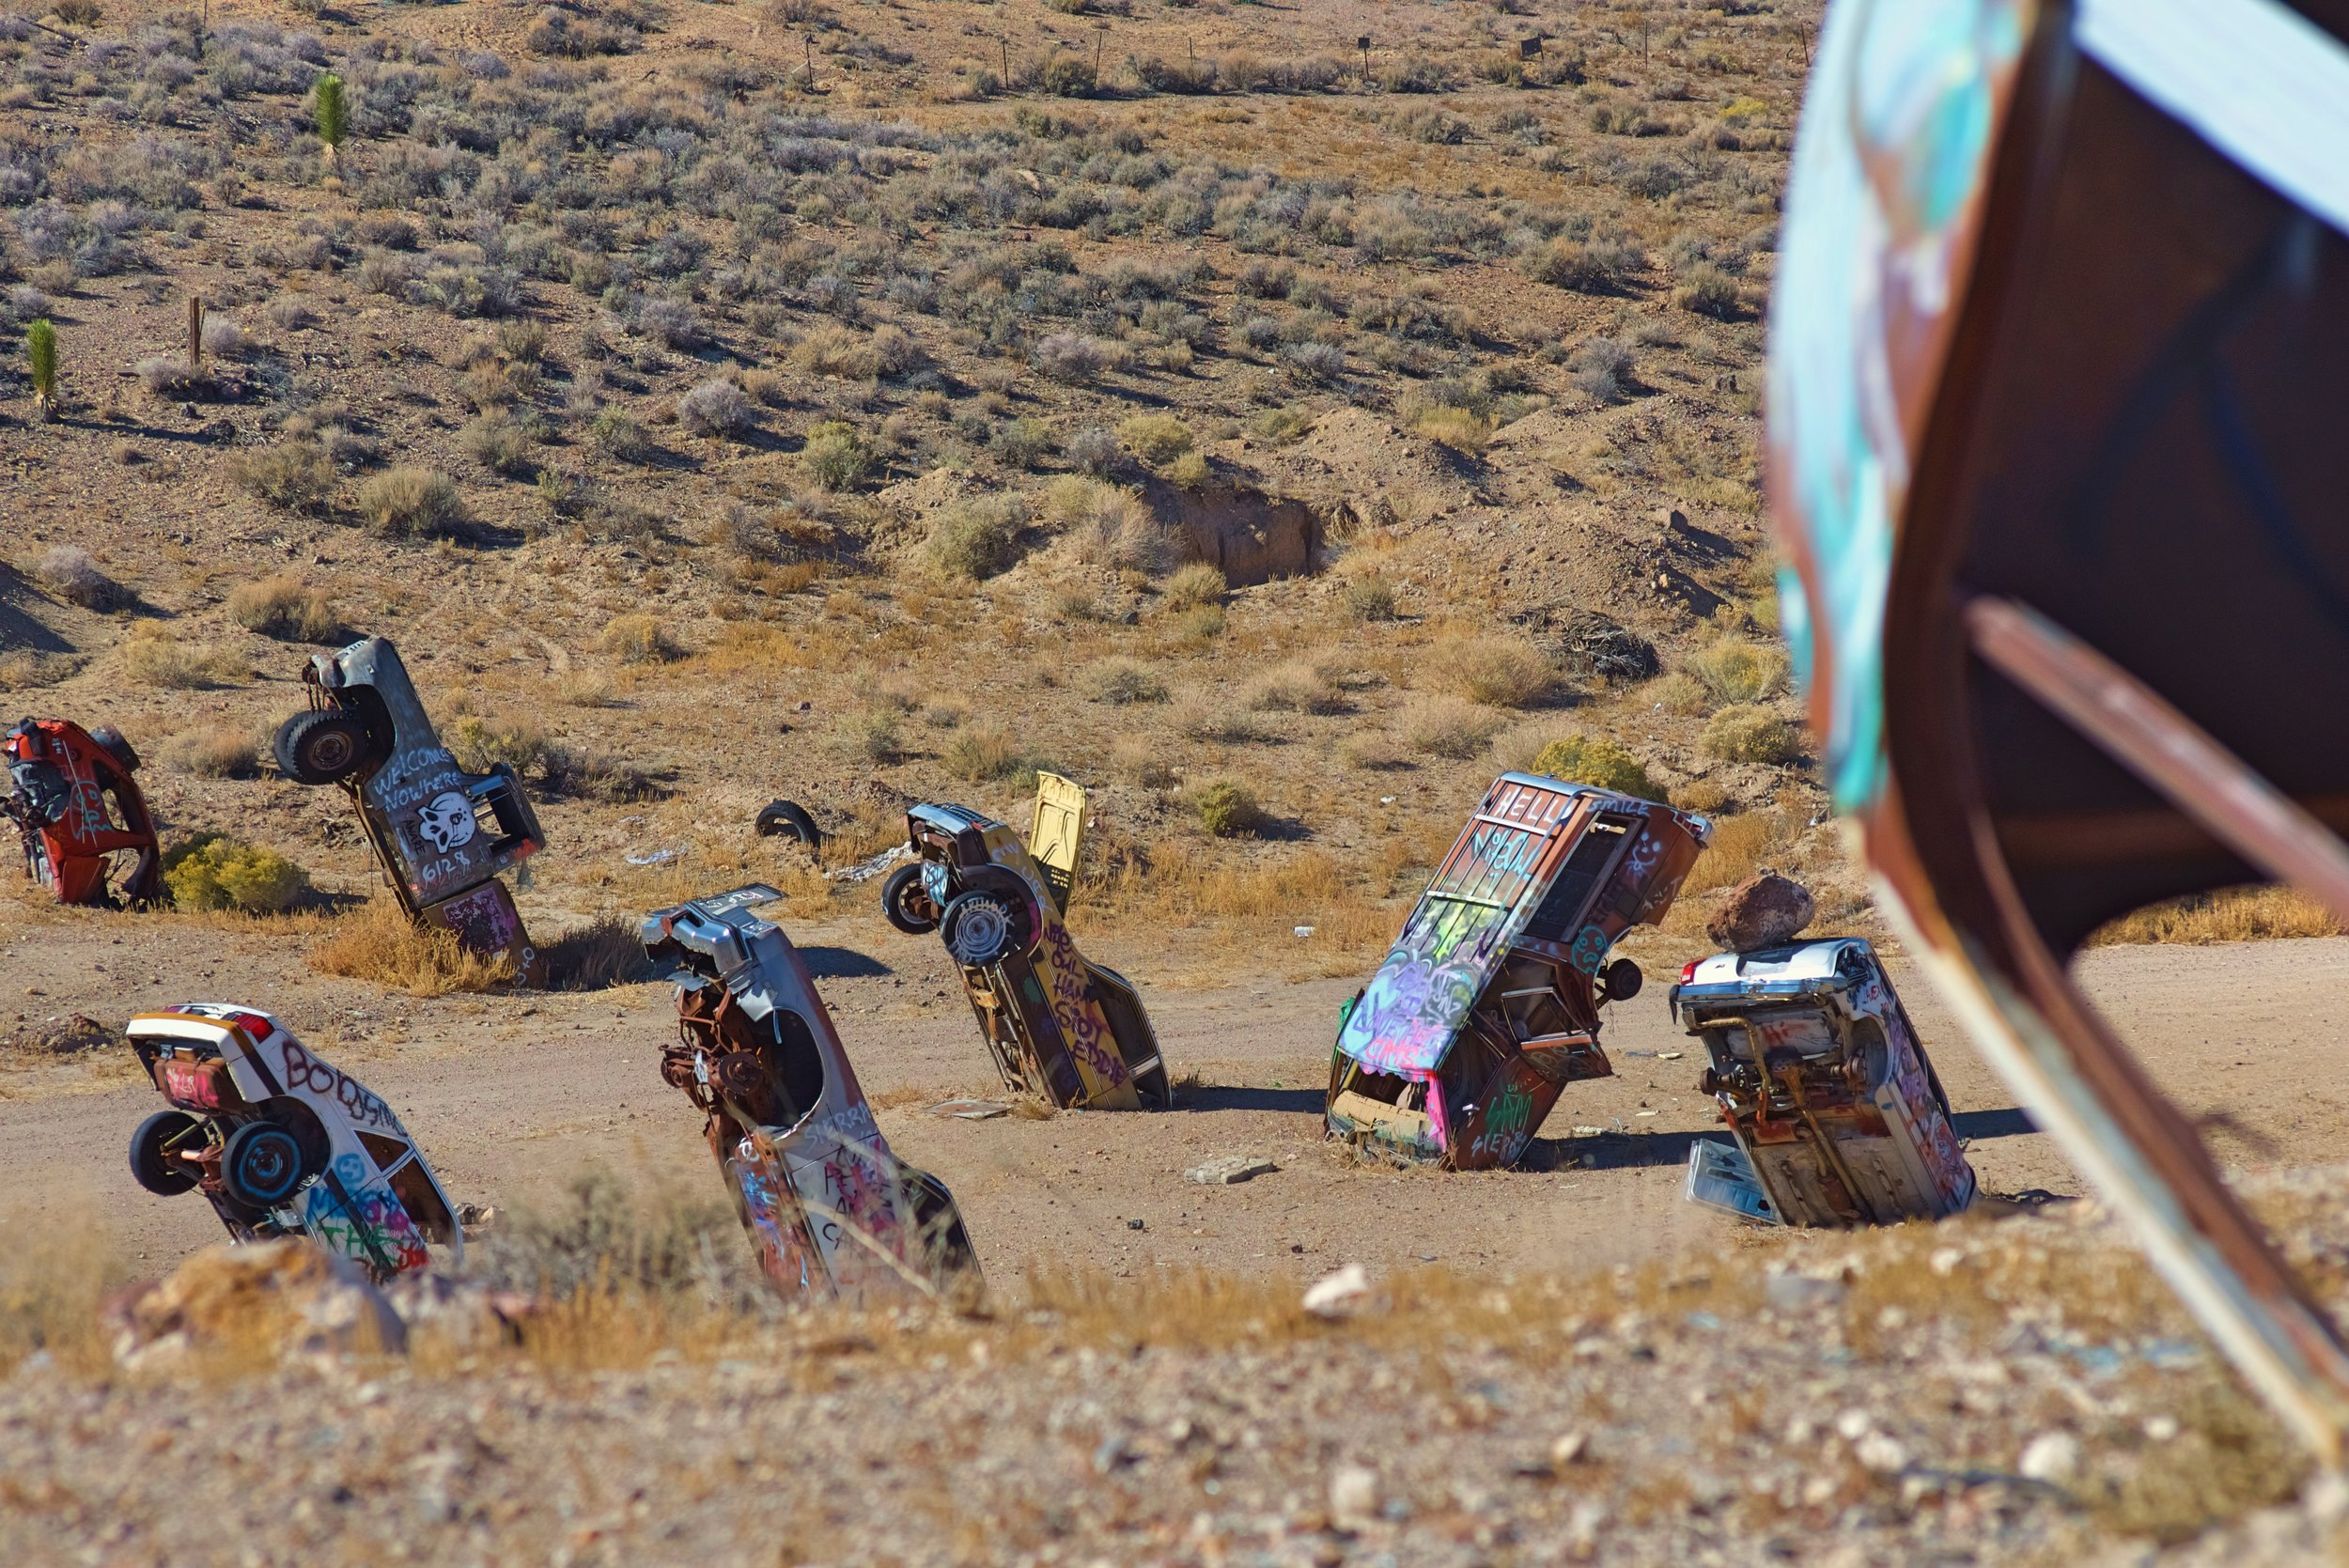 There are probably about 40 cars, trucks, and buses sprouting out of the desert at different angles.